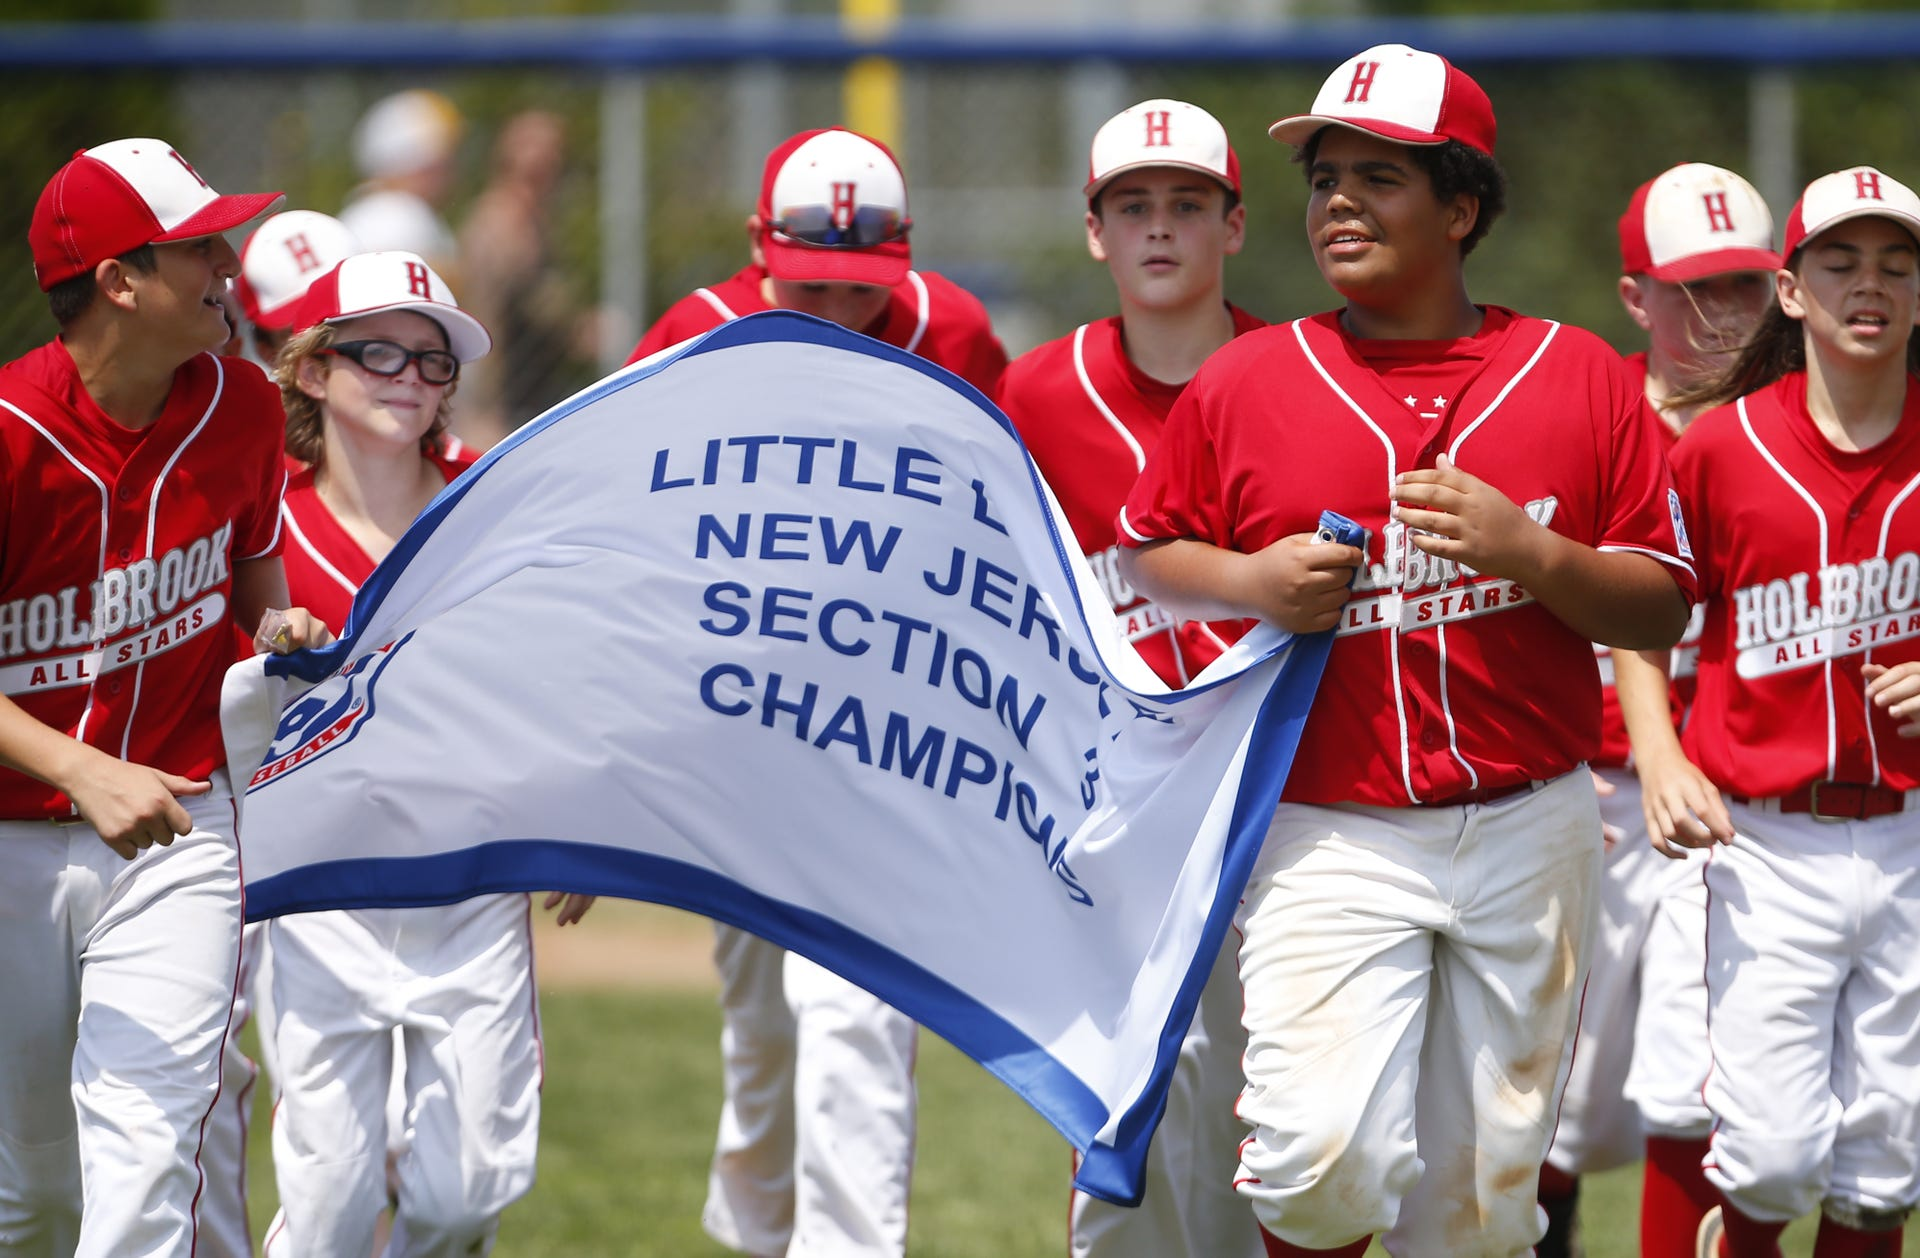 Little League: Holbrook wins Section 3 Title